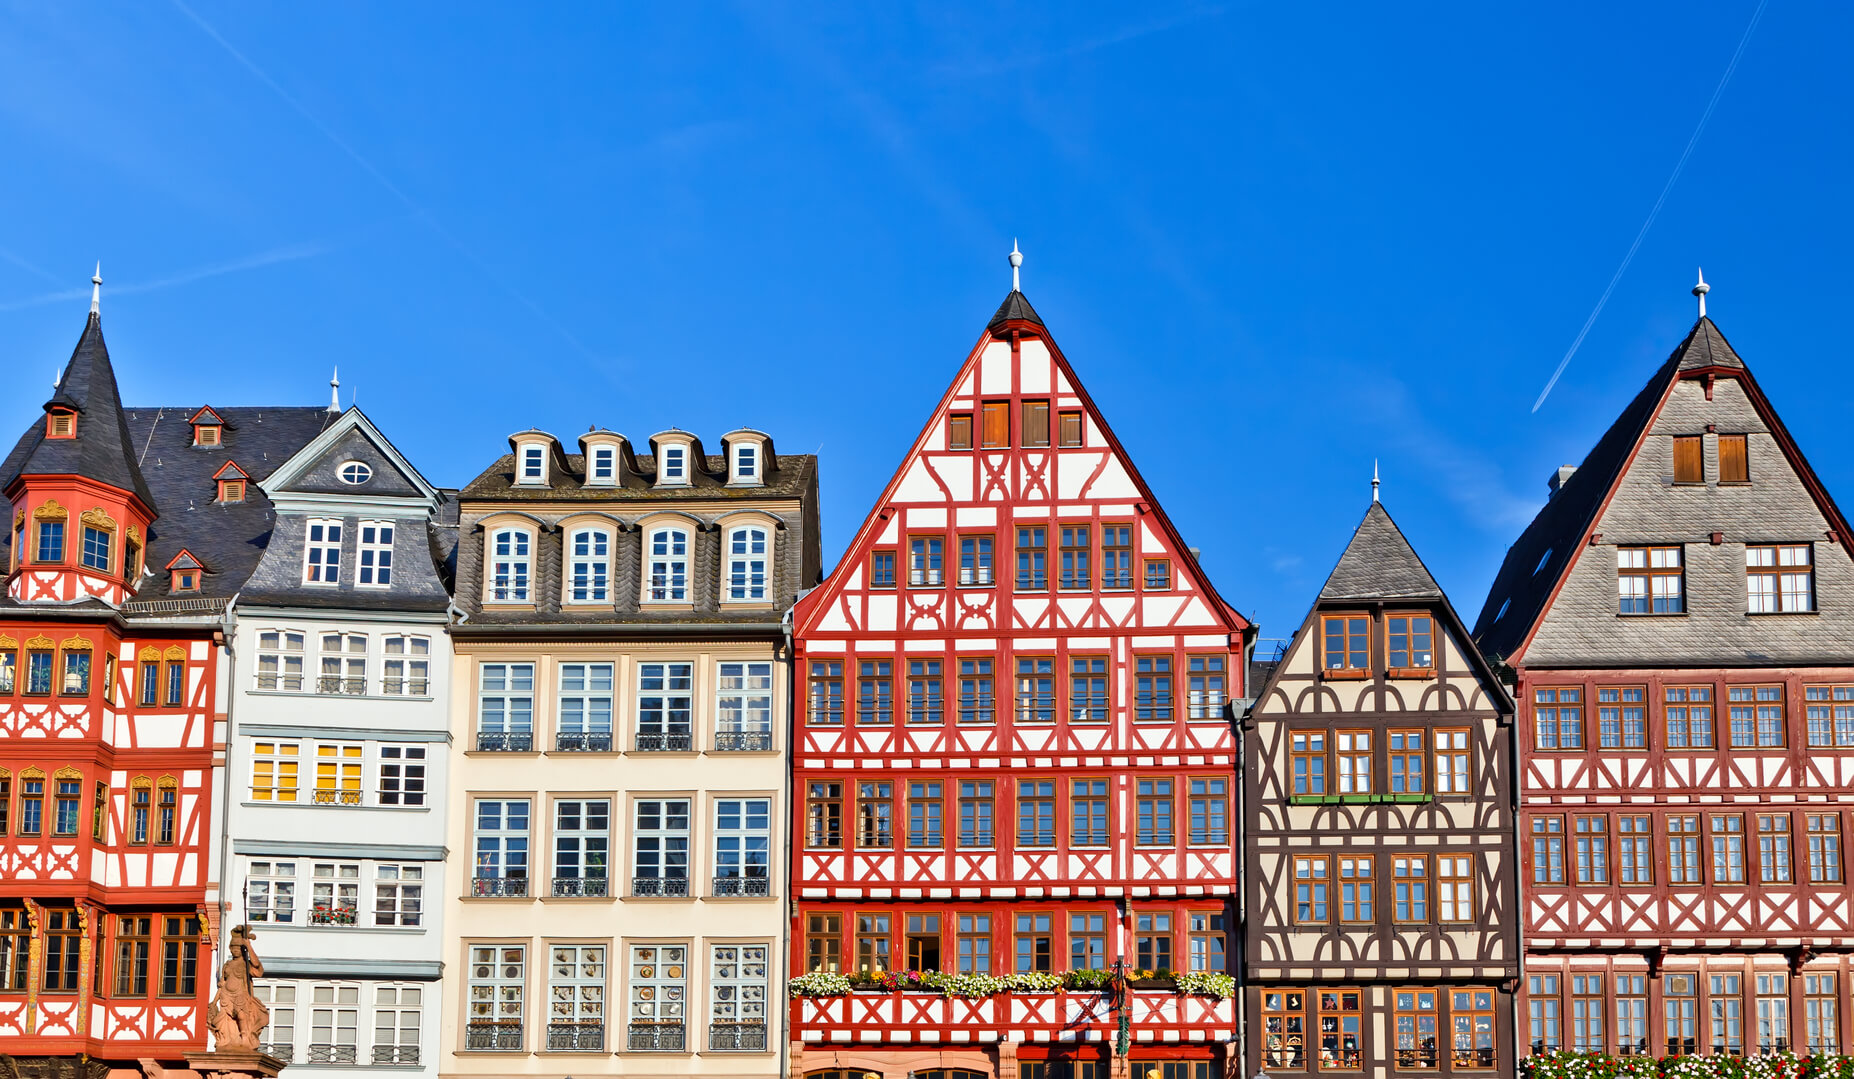 Non-stop from Kuala Lumpur, Malaysia to Frankfurt, Germany for only $460 USD roundtrip